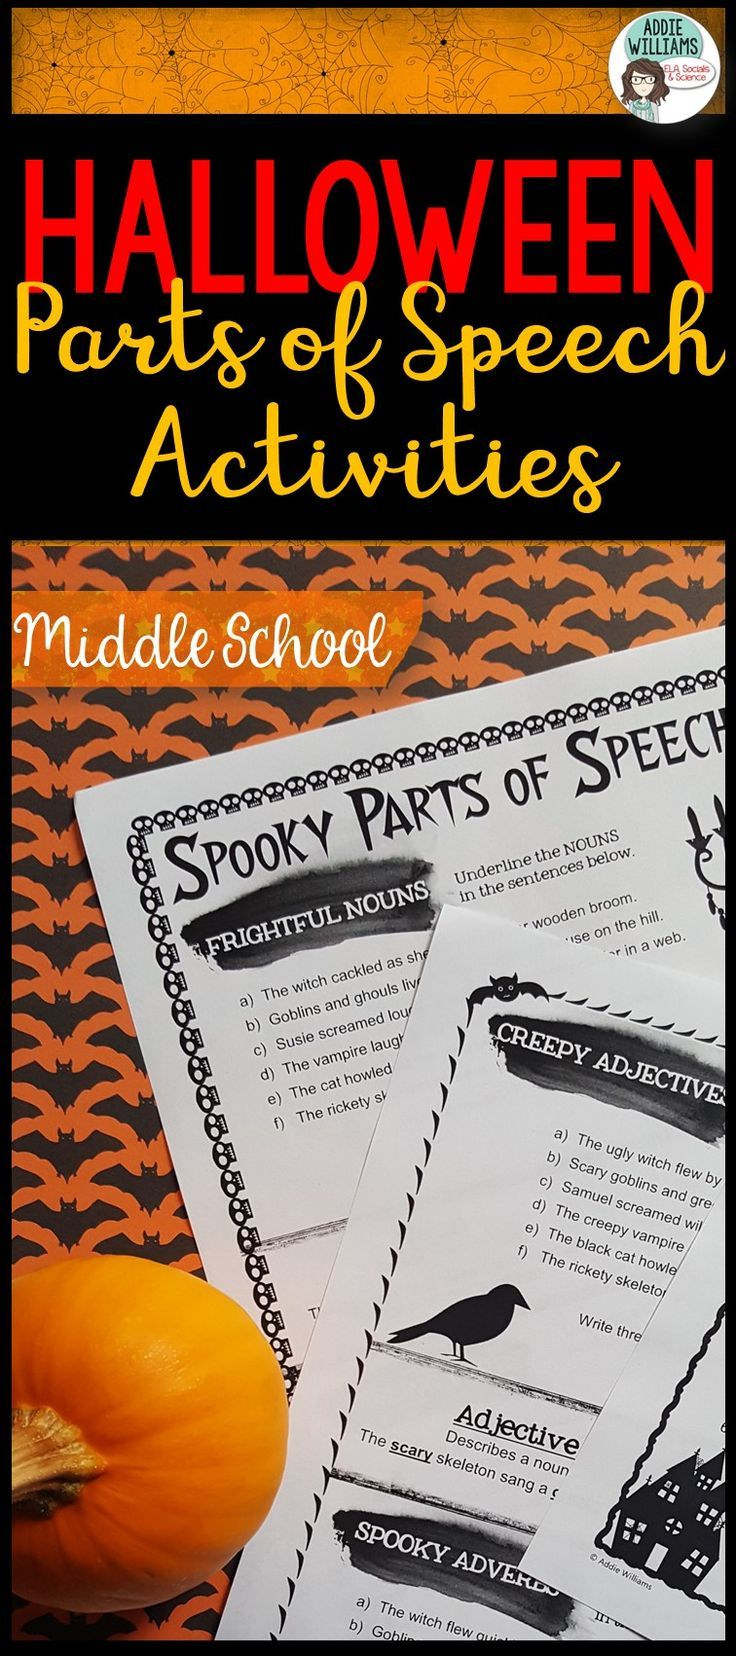 Review parts of speech with this fun and engaging Halloween themed resource designed with Middle School students in mind.  #halloween